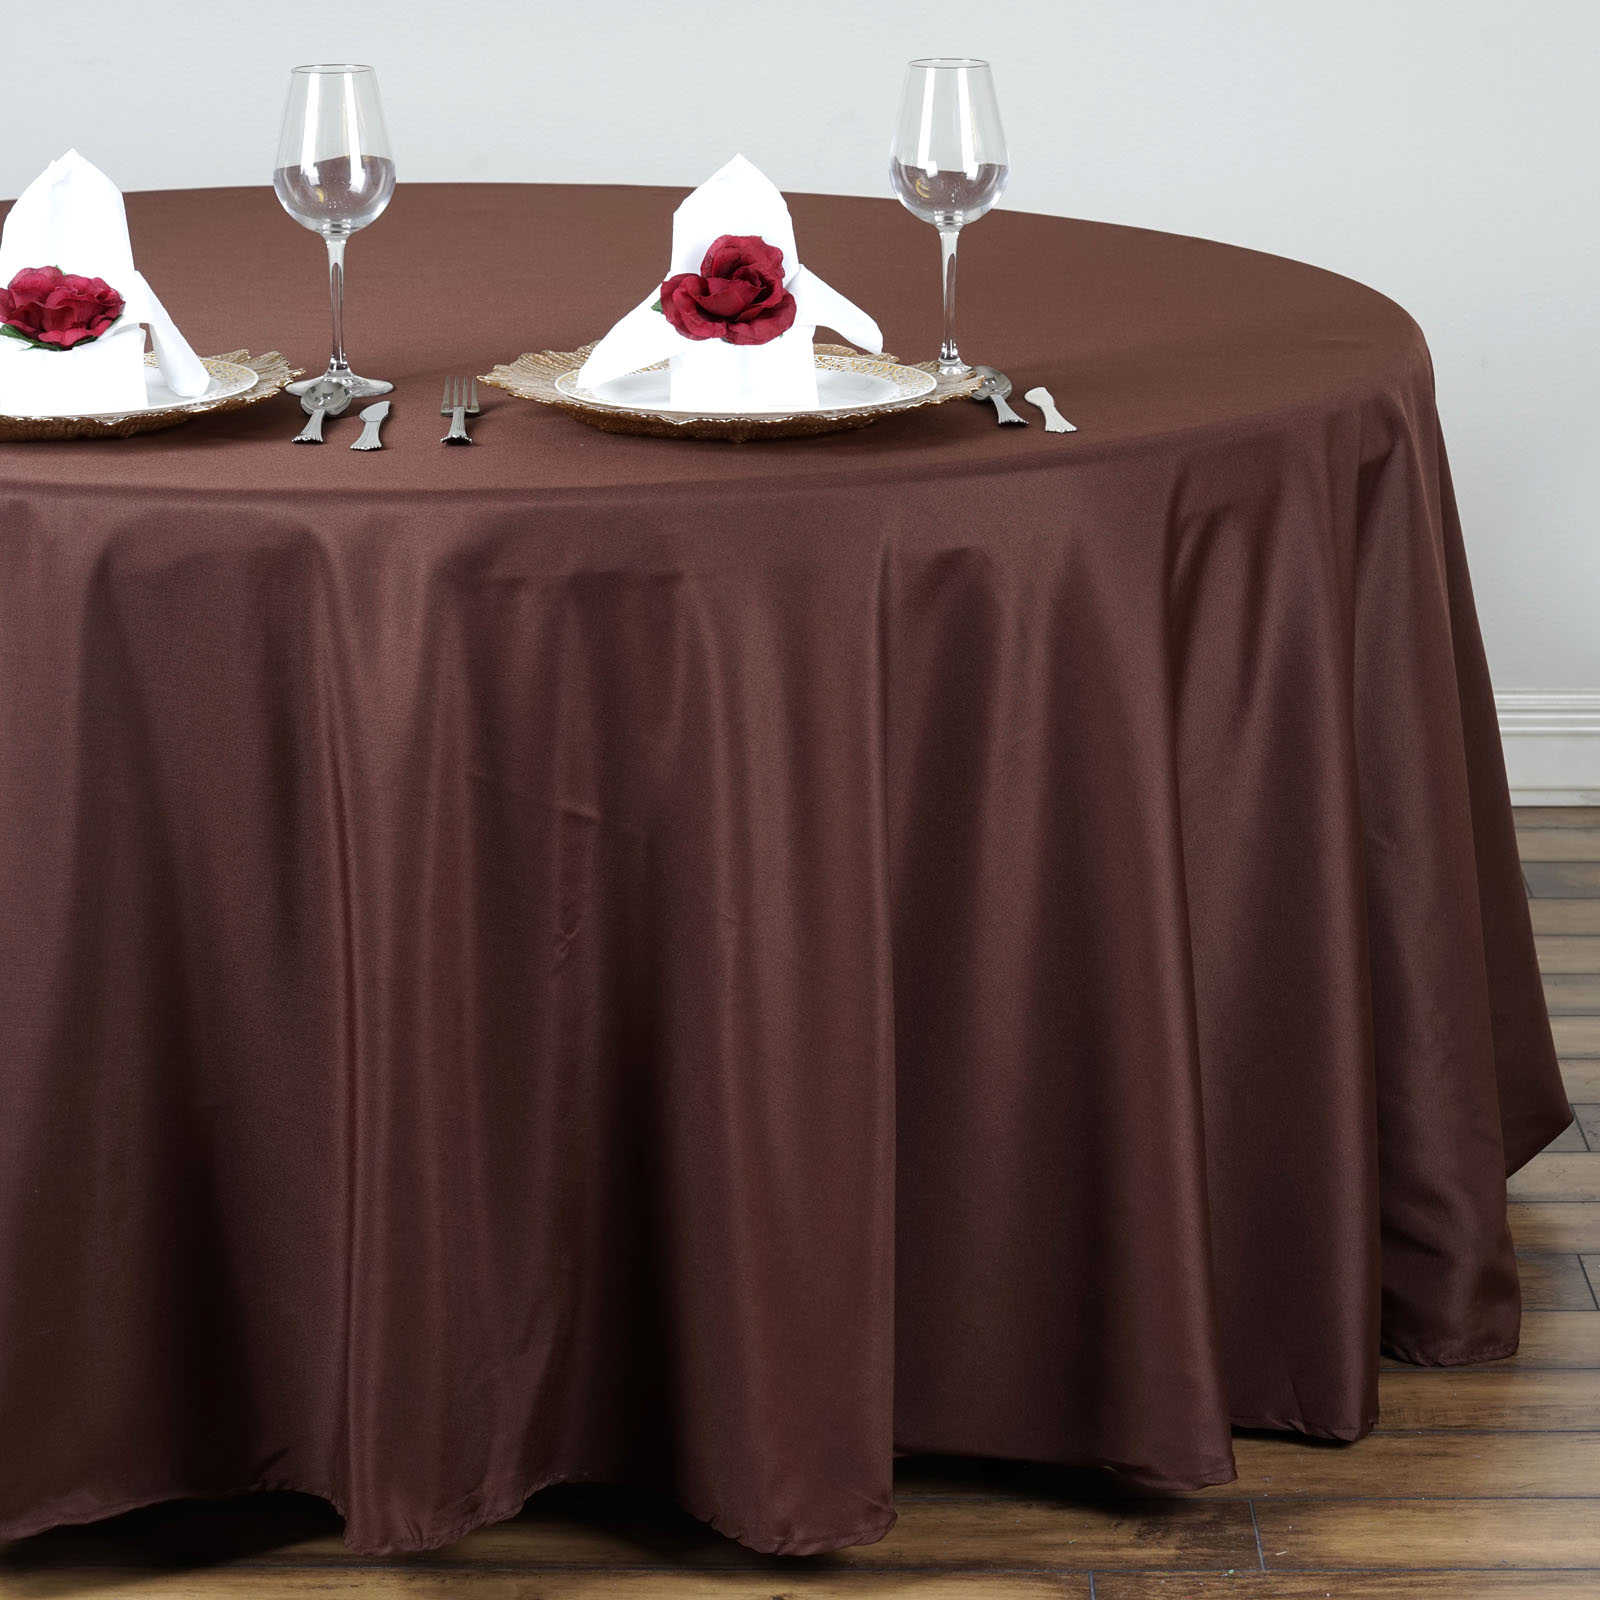 "BalsaCircle 132"" Round Polyester Tablecloths for Party Wedding Reception Catering... by BalsaCircle"